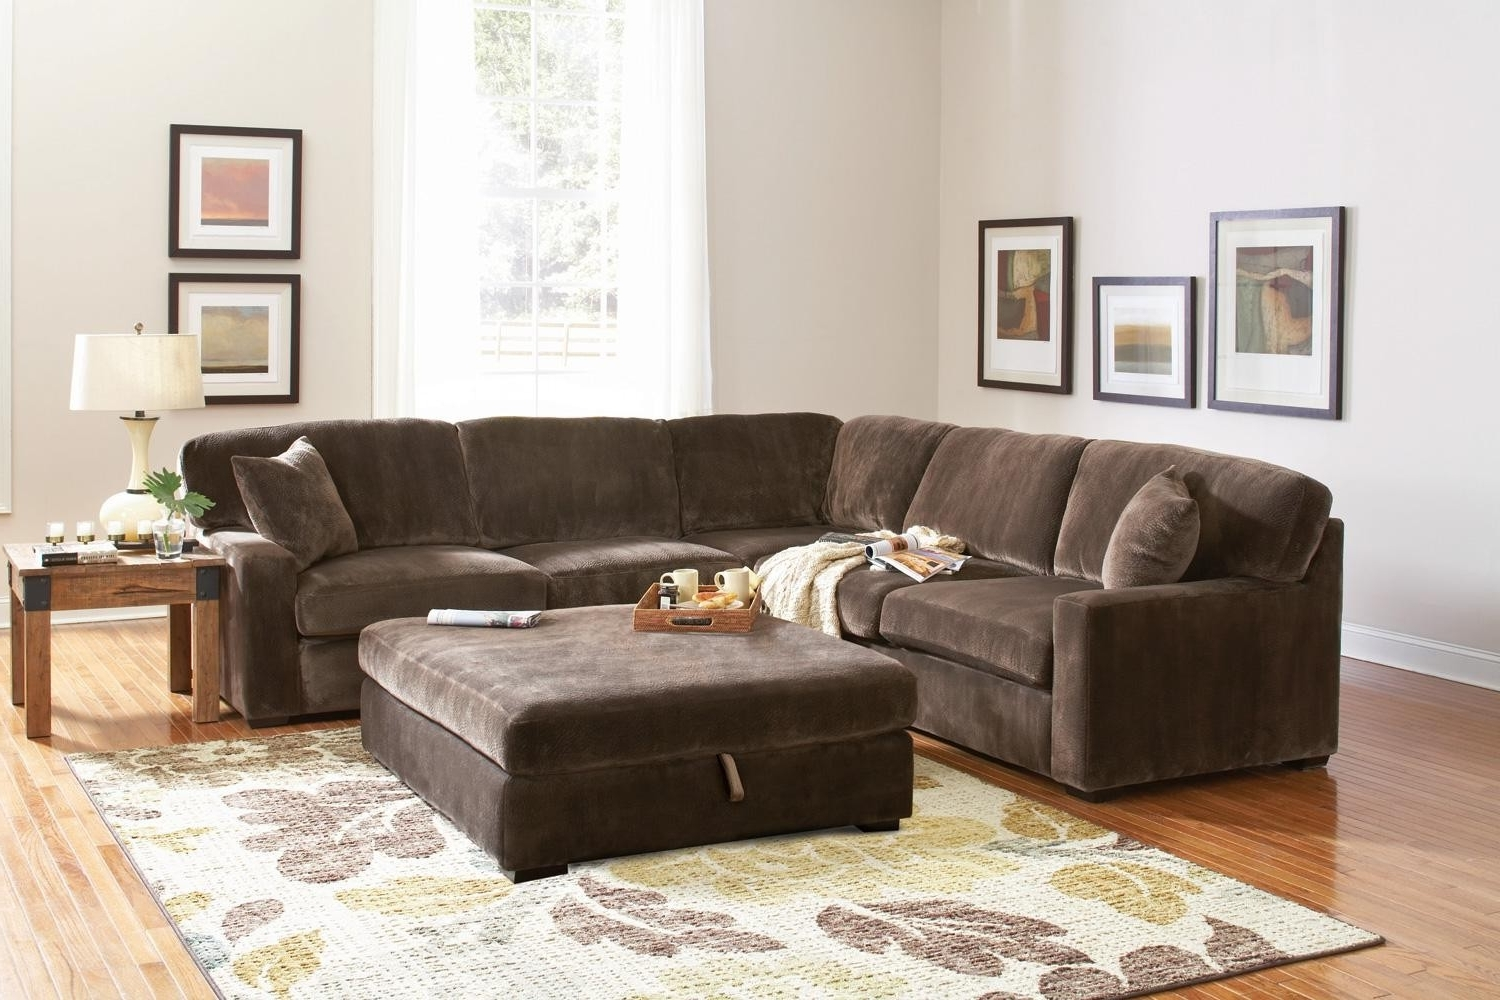 Most Current Sectional Sofa Design: Simple Sectional Leather Sofas With Pertaining To Sectionals With Oversized Ottoman (View 15 of 20)